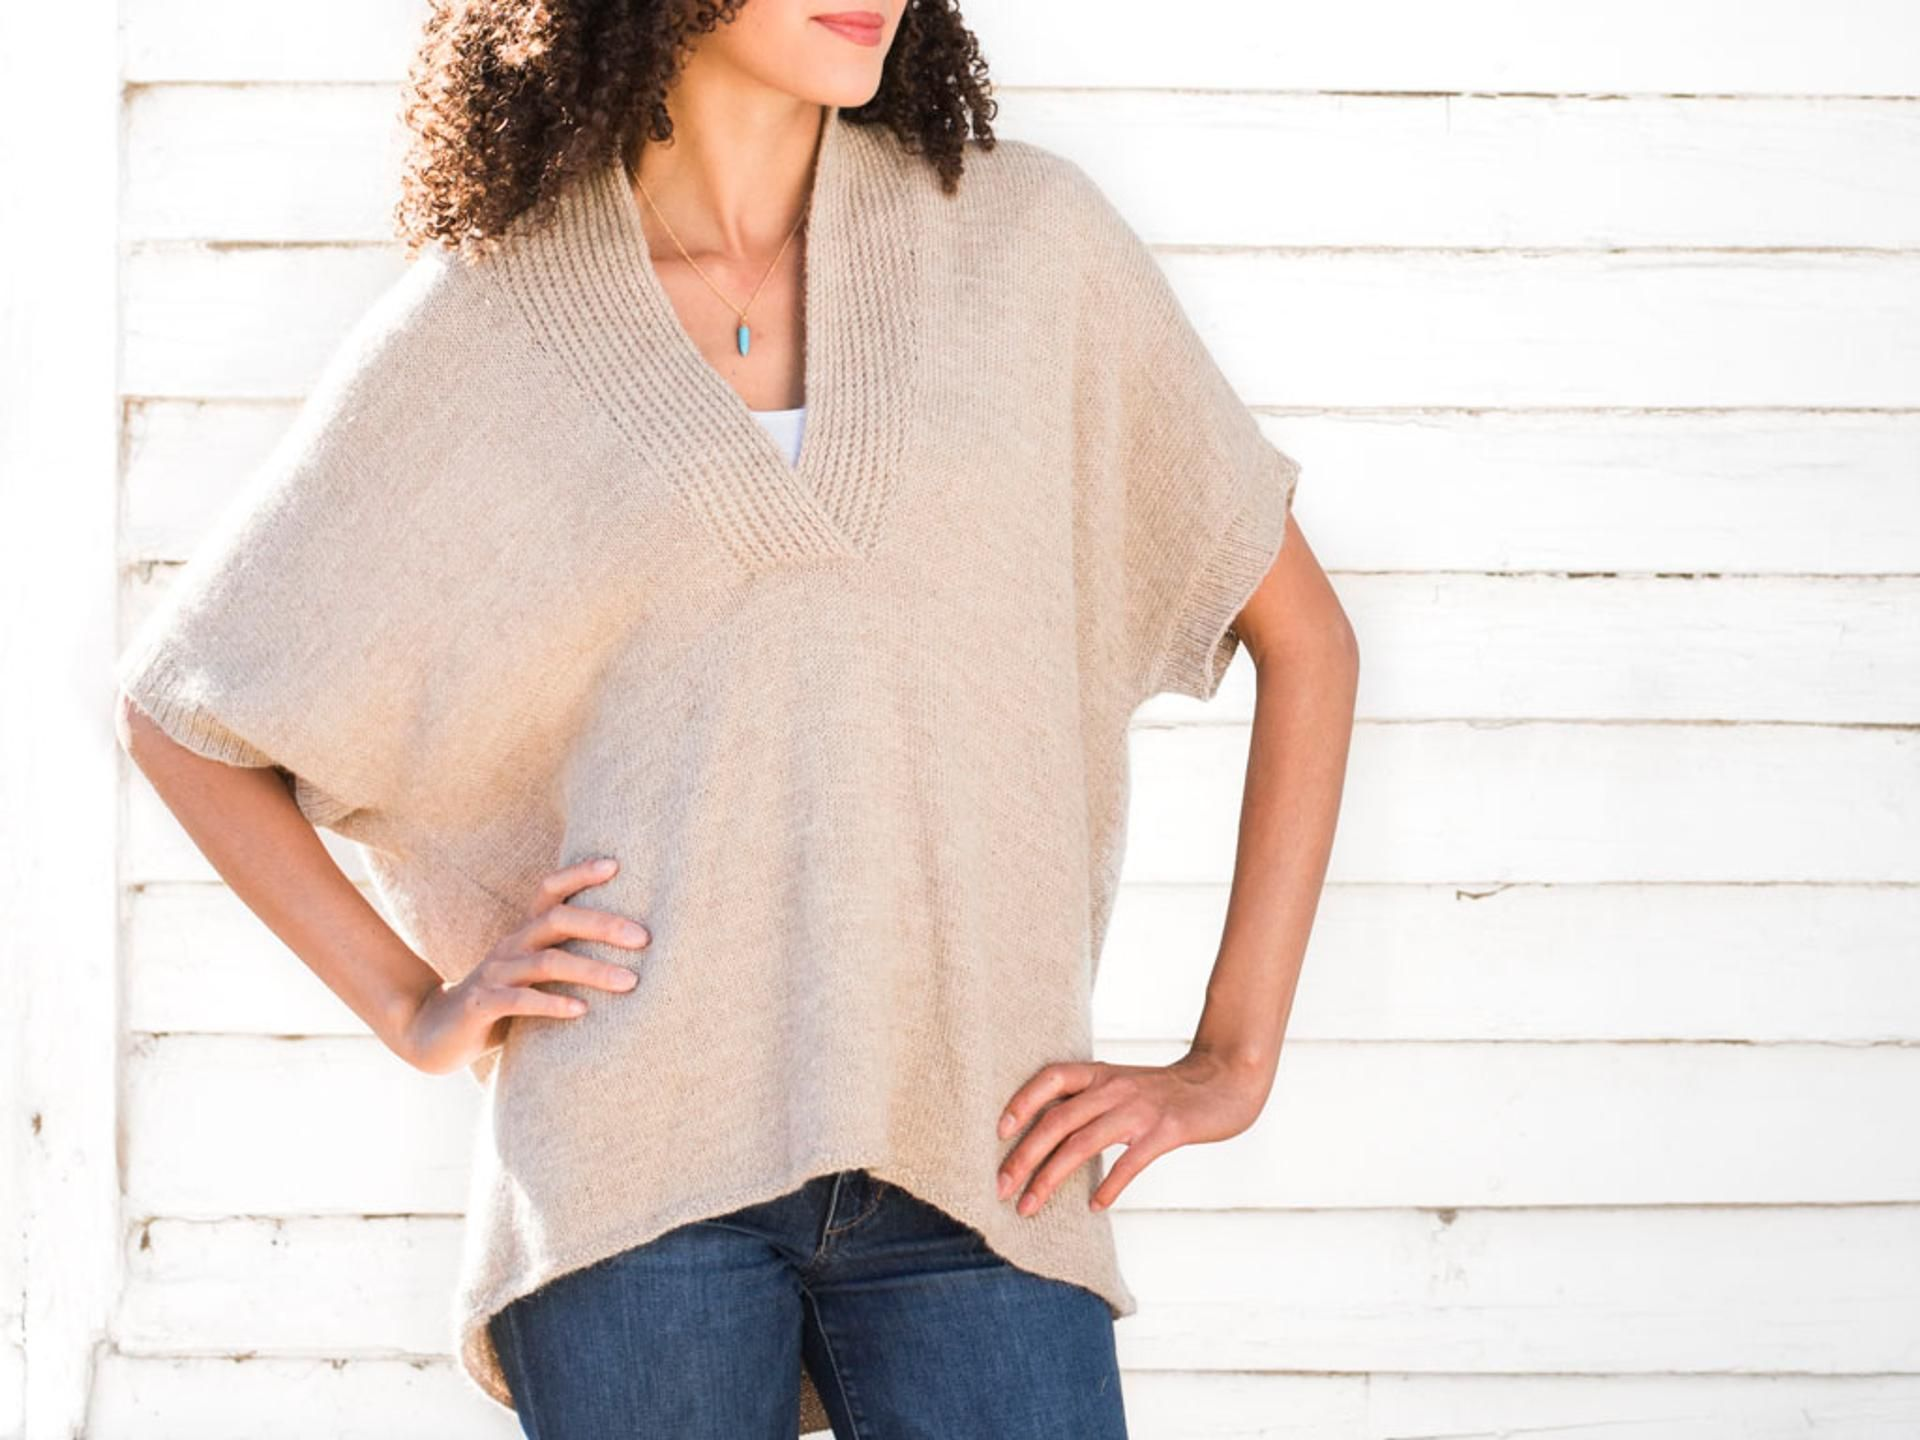 Bexley Popover Sweater Knitting Kit | Knitting ideas